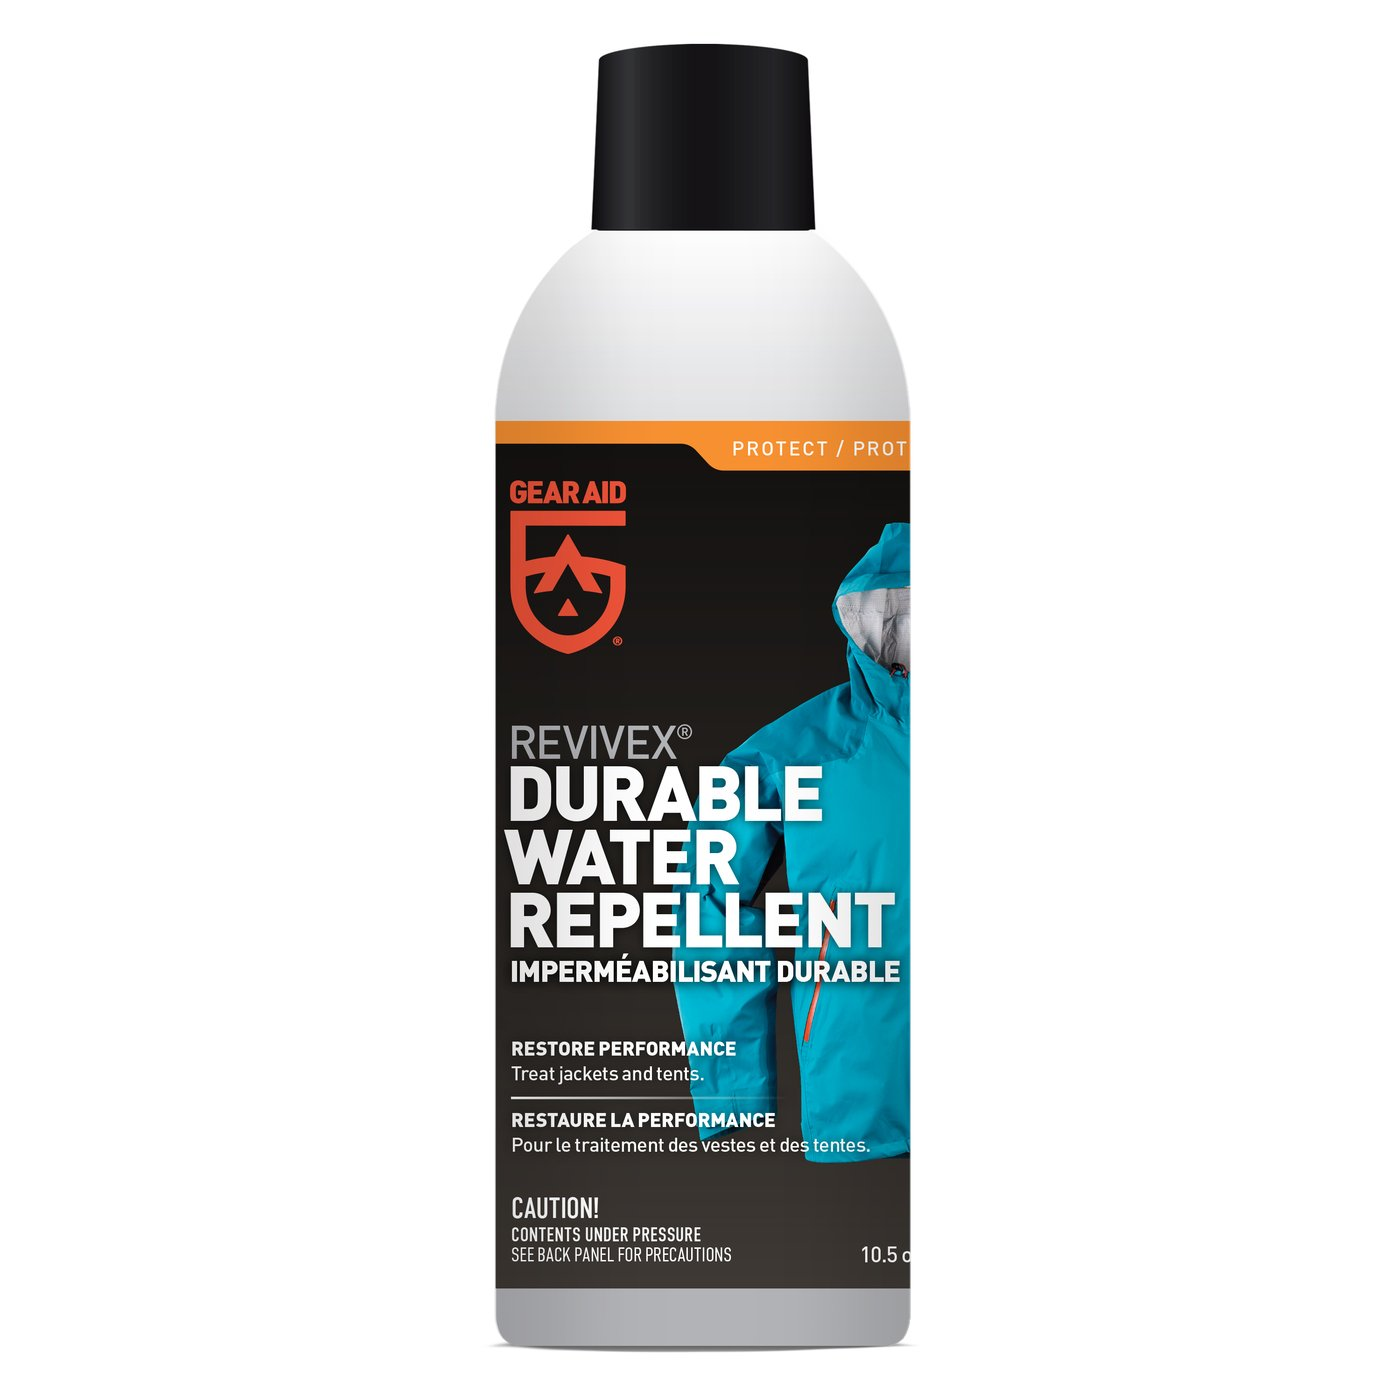 REVIVEX DURABLE WATER REPELLENT 10.5 OZ (298G)